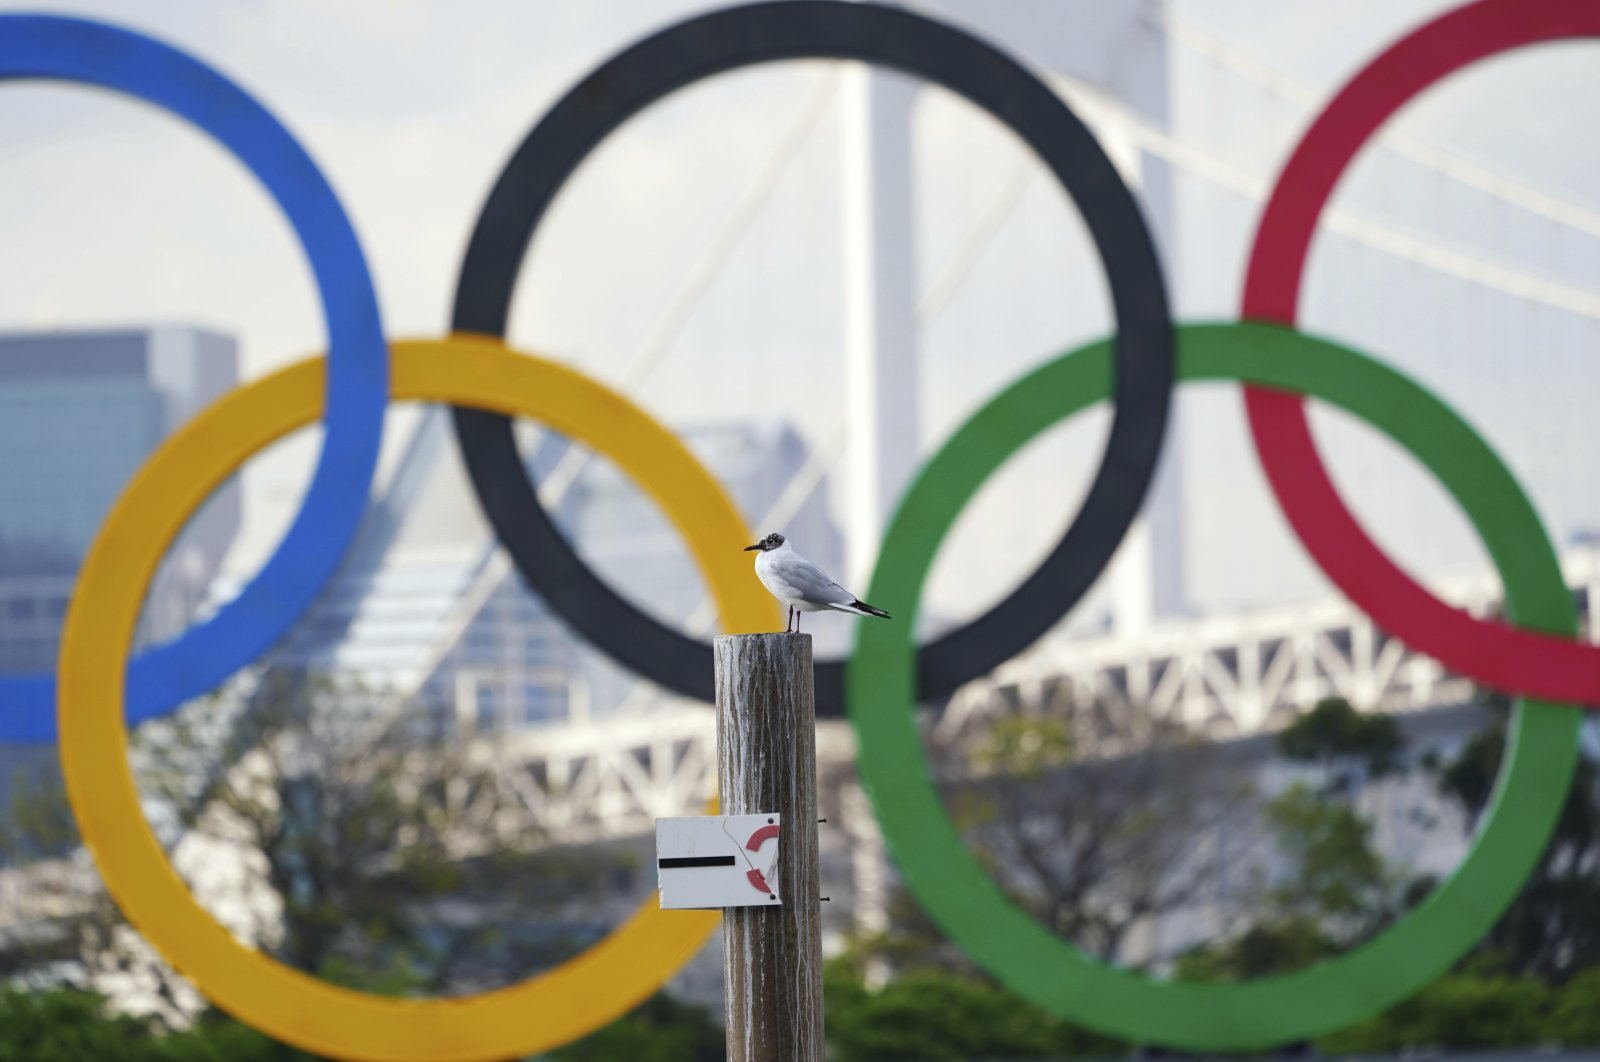 A bird rests with a backdrop of the Olympic rings floating in the water in the Odaiba section, Tokyo, Japan, April 8, 2021 (AP Photo)